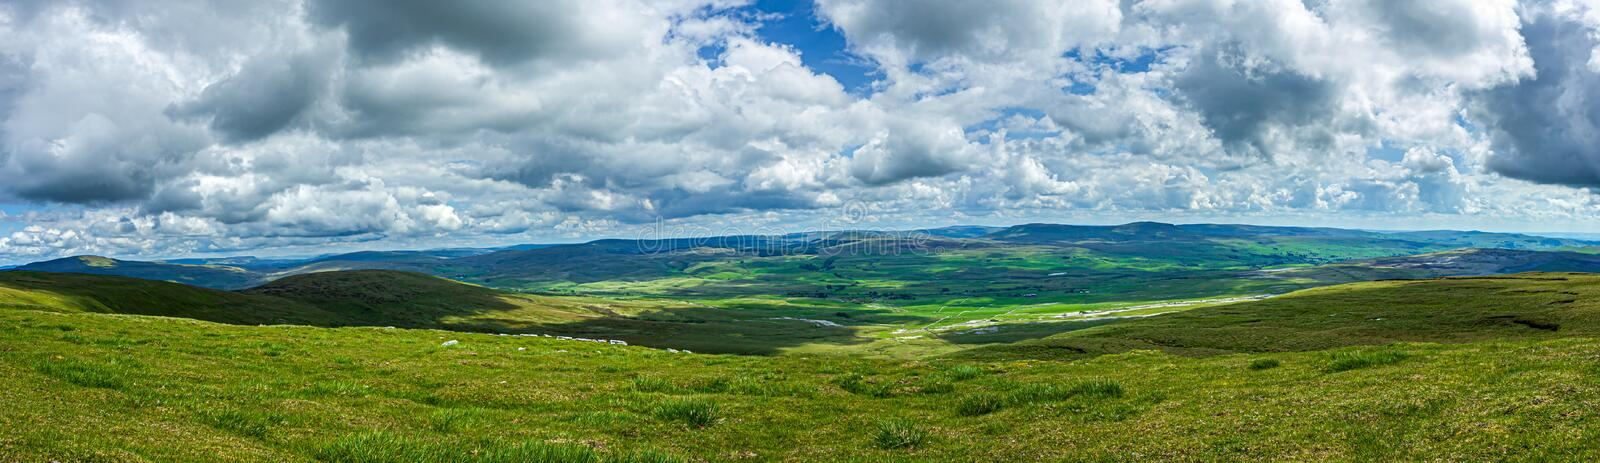 A panoramic view of a mountain valley with grassy green slope under a majestic blue sky and white clouds stock photo